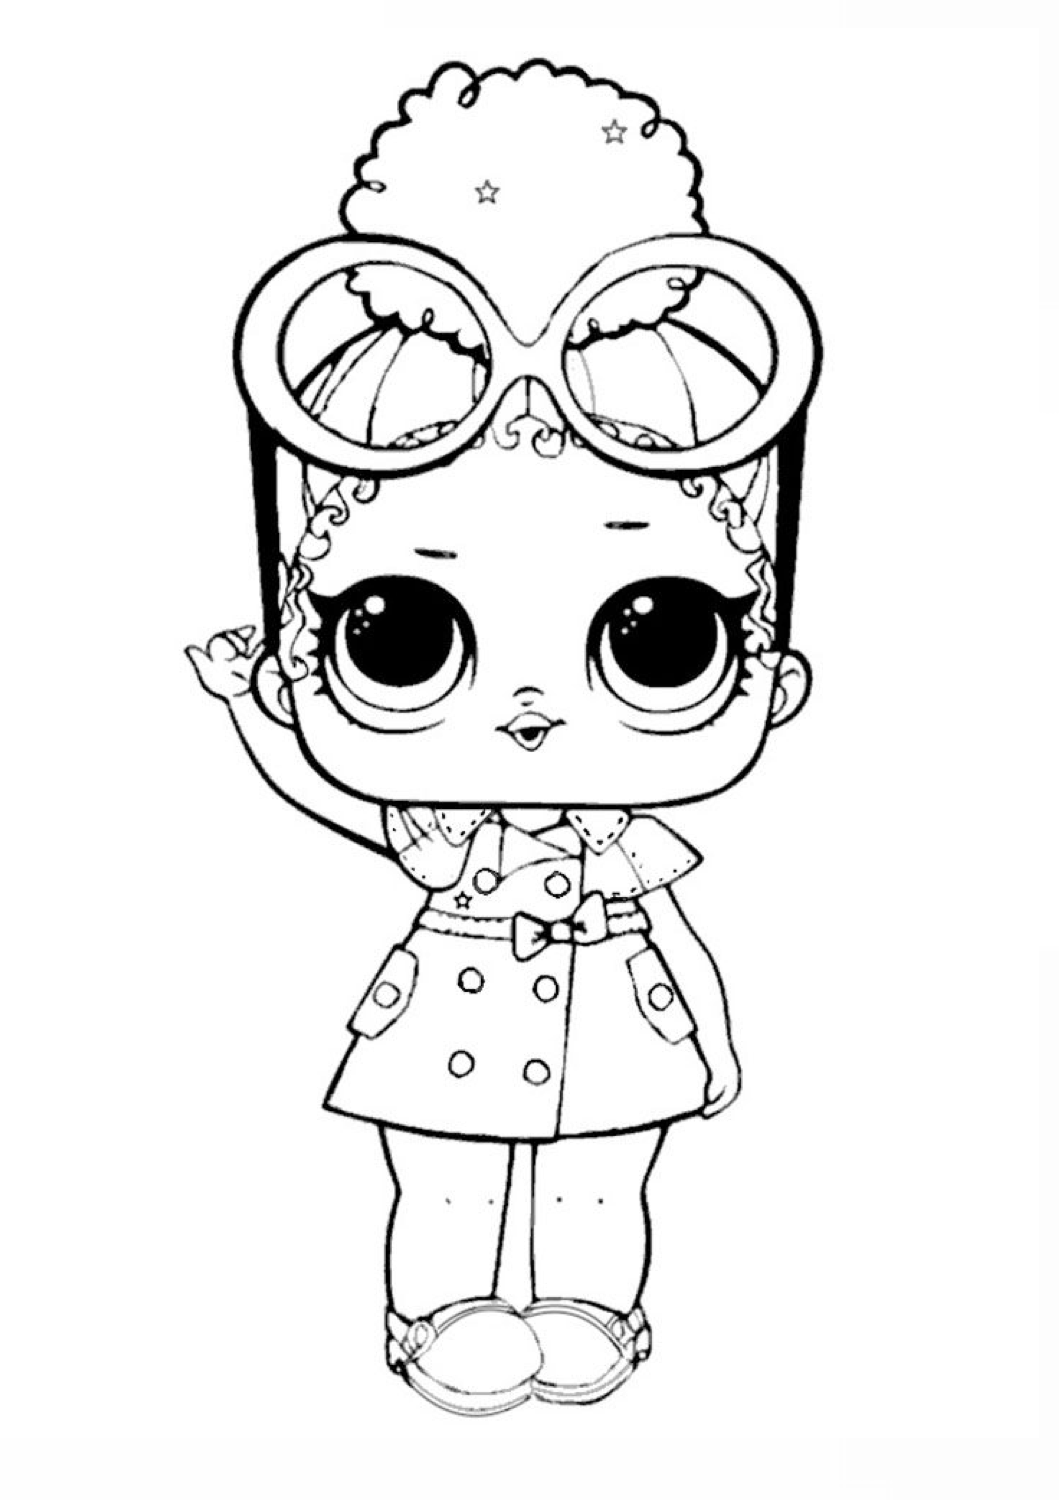 Boss Queen Zoo Coloring Pages Cute Coloring Pages Coloring Pages